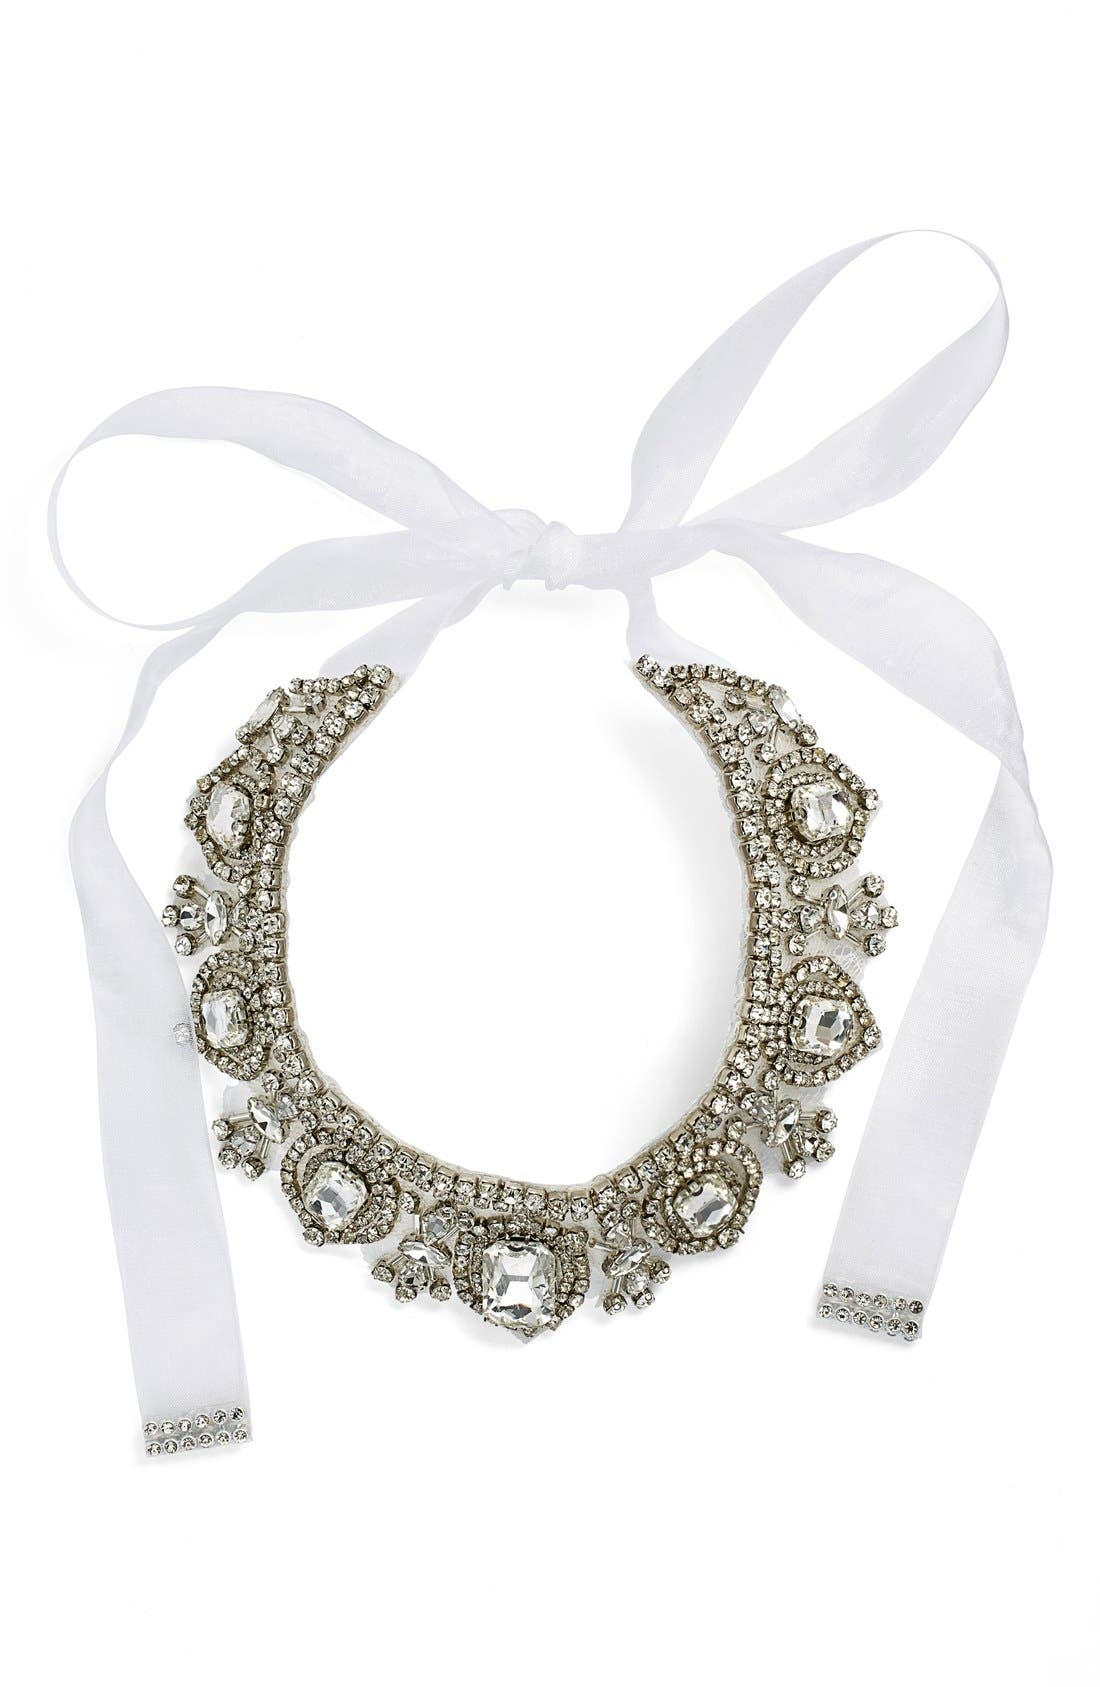 'Glamorous' Tie Collar Necklace,                             Main thumbnail 1, color,